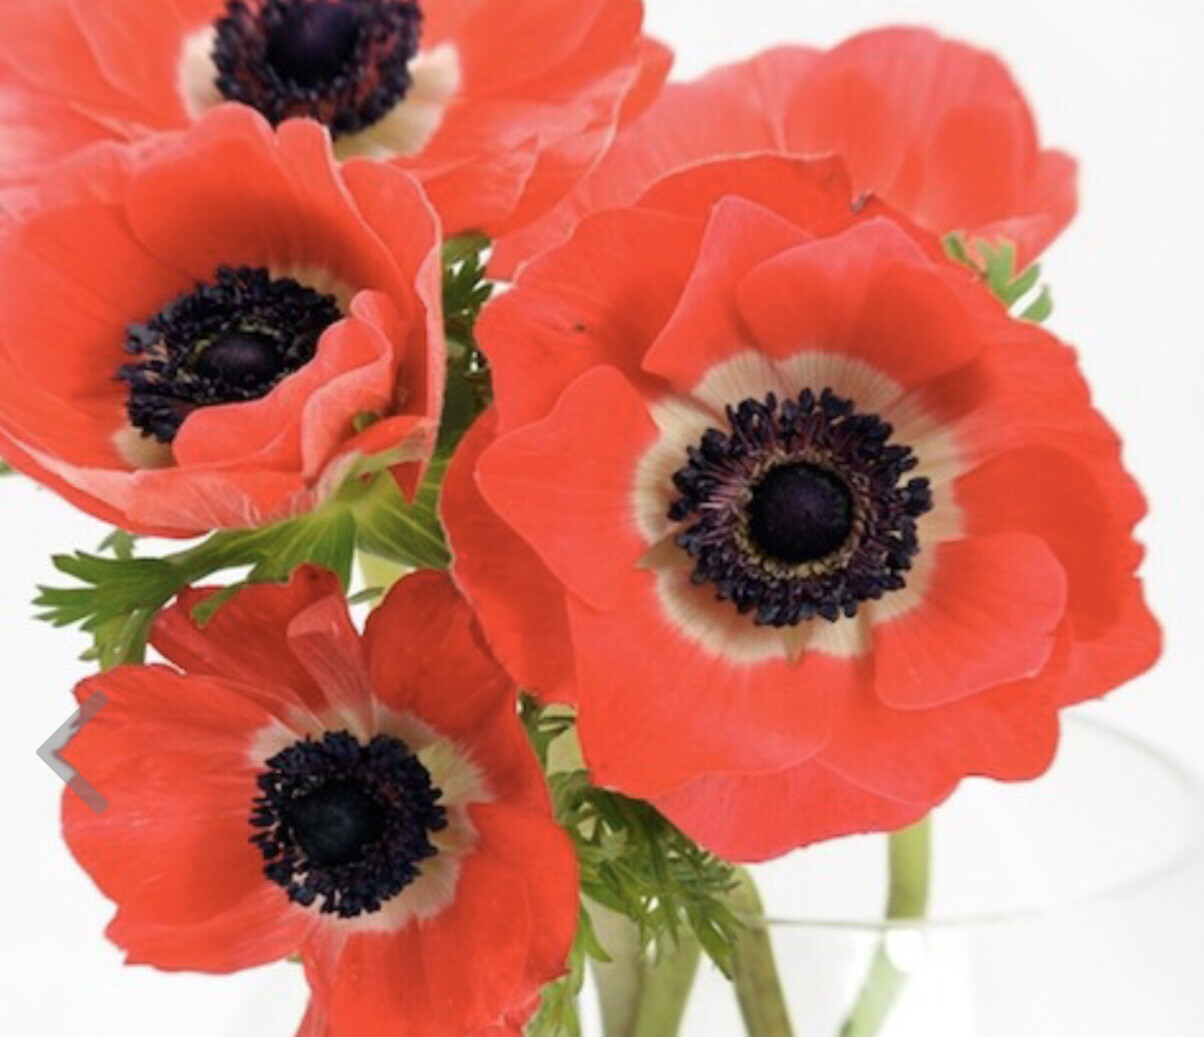 Anemones For Cut Flower Production-Red